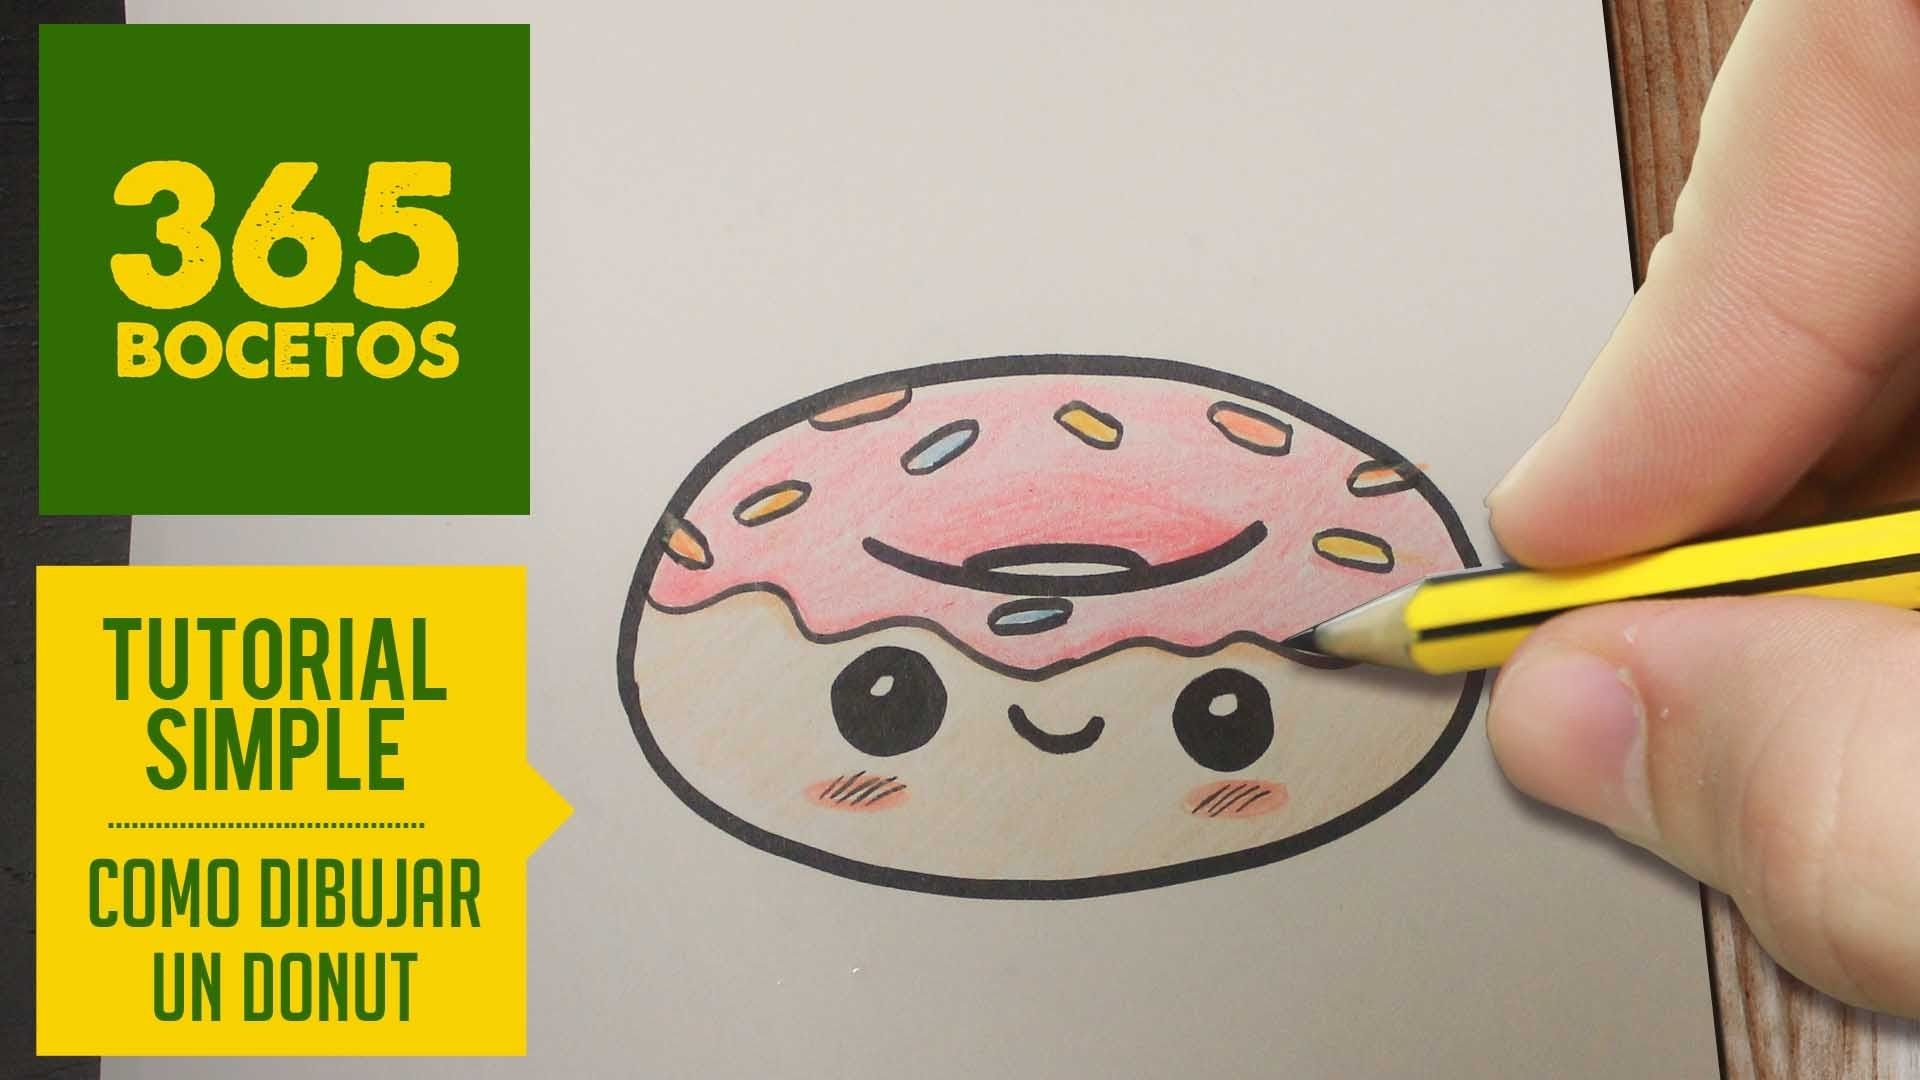 COMO DIBUJAR UN DONUT KAWAII PASO A PASO - Dibujos Kawaii Faciles - How To Draw A Donut